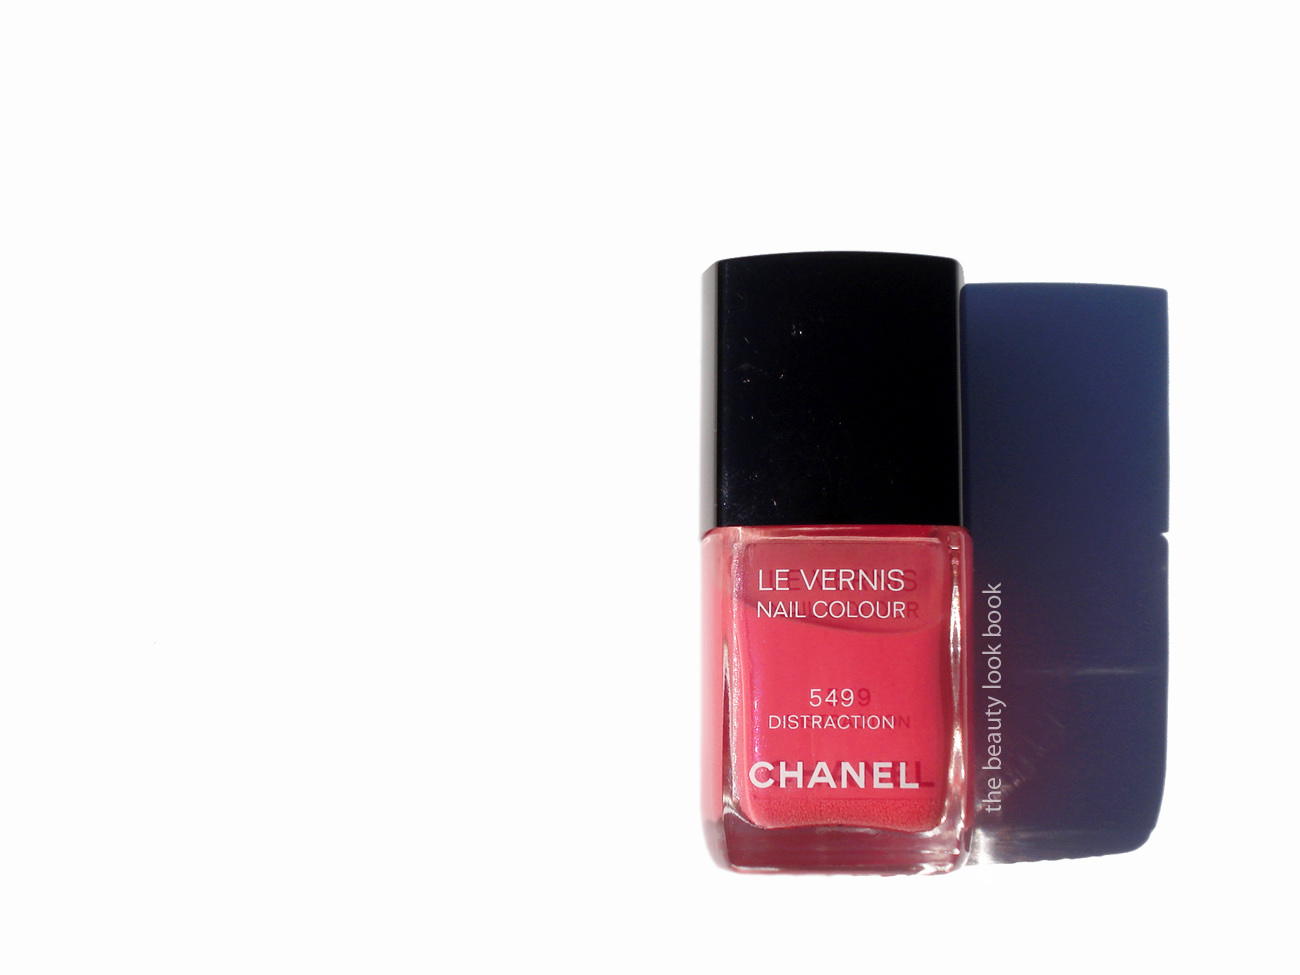 Chanel Distraction 549 Le Vernis | The Beauty Look Book